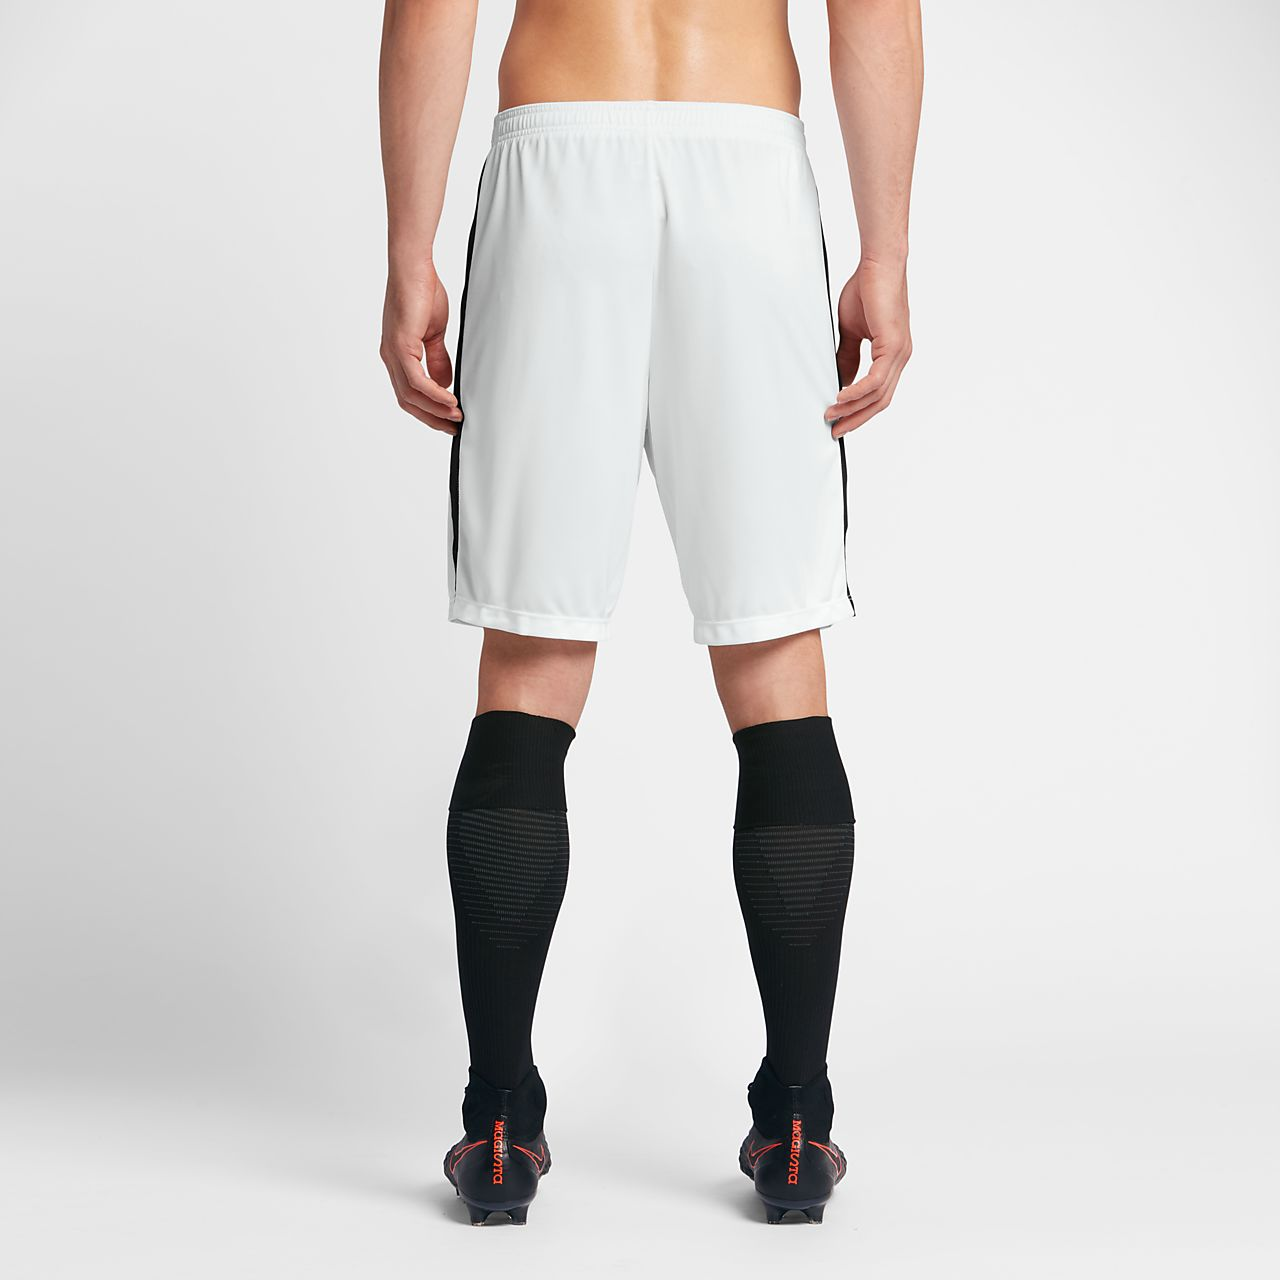 ... Nike Dri-FIT Academy Men's Soccer Shorts